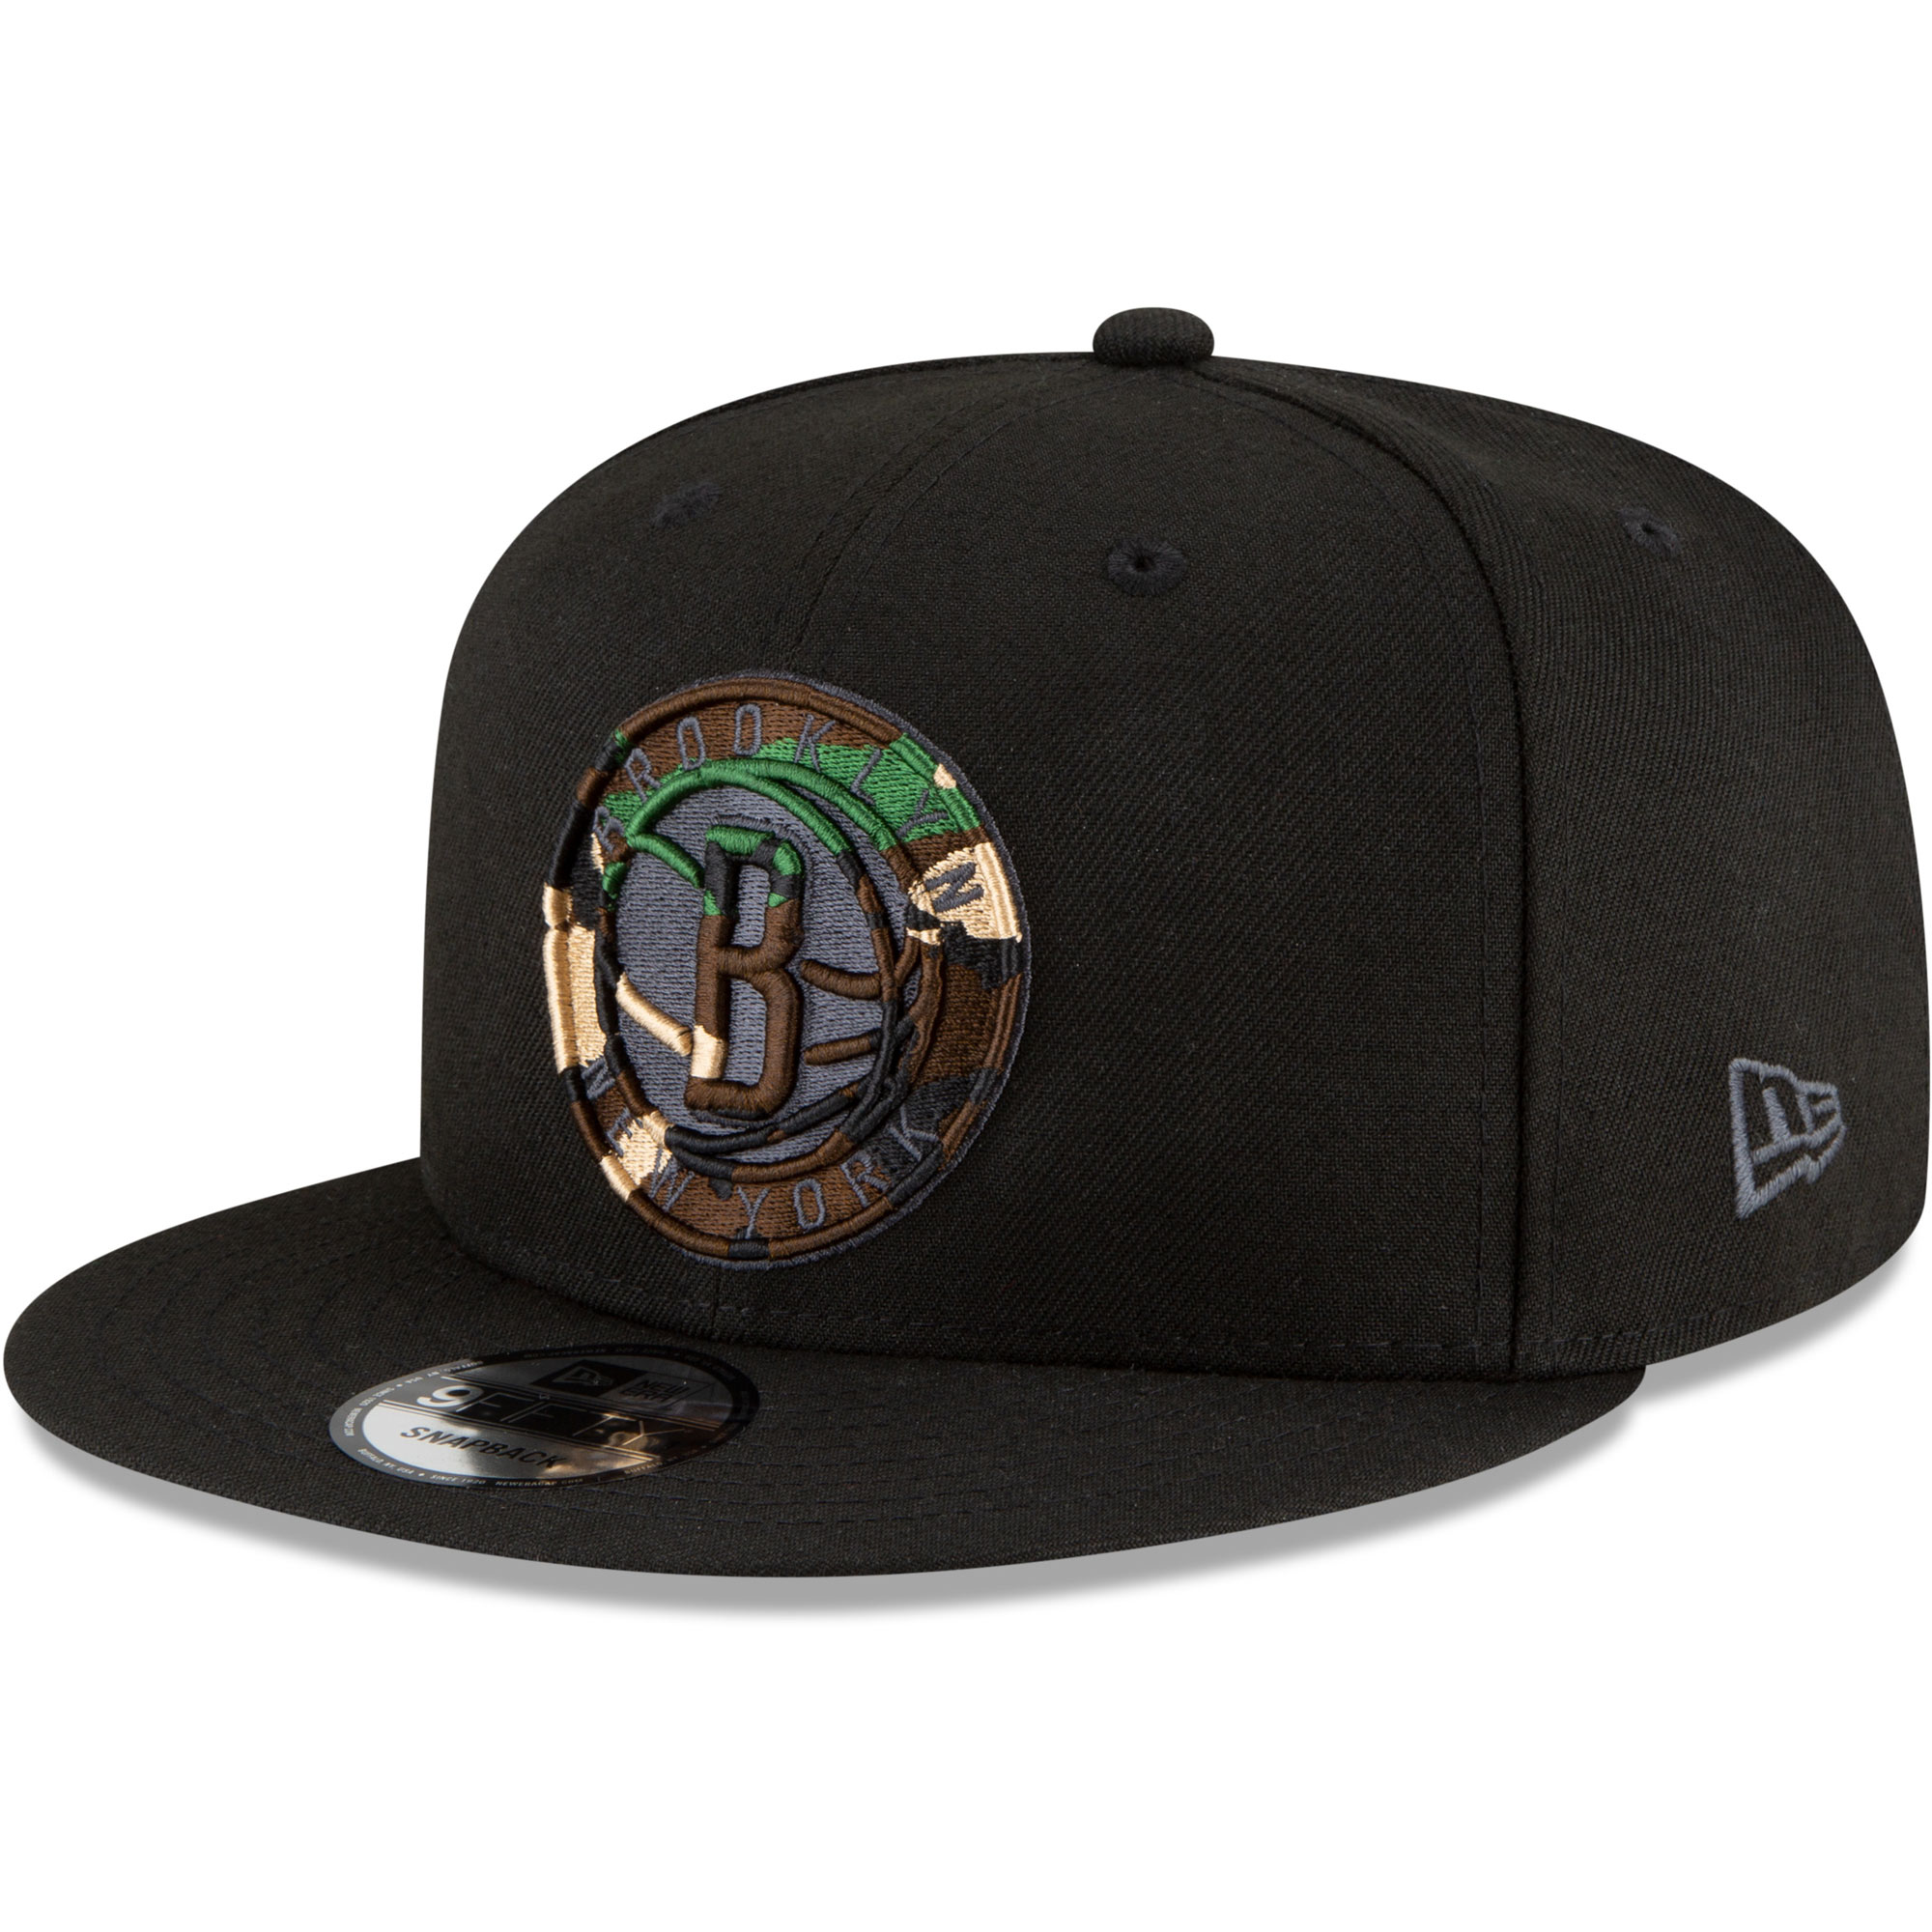 Brooklyn Nets New Era Extreme 9FIFTY Snapback Hat - Black